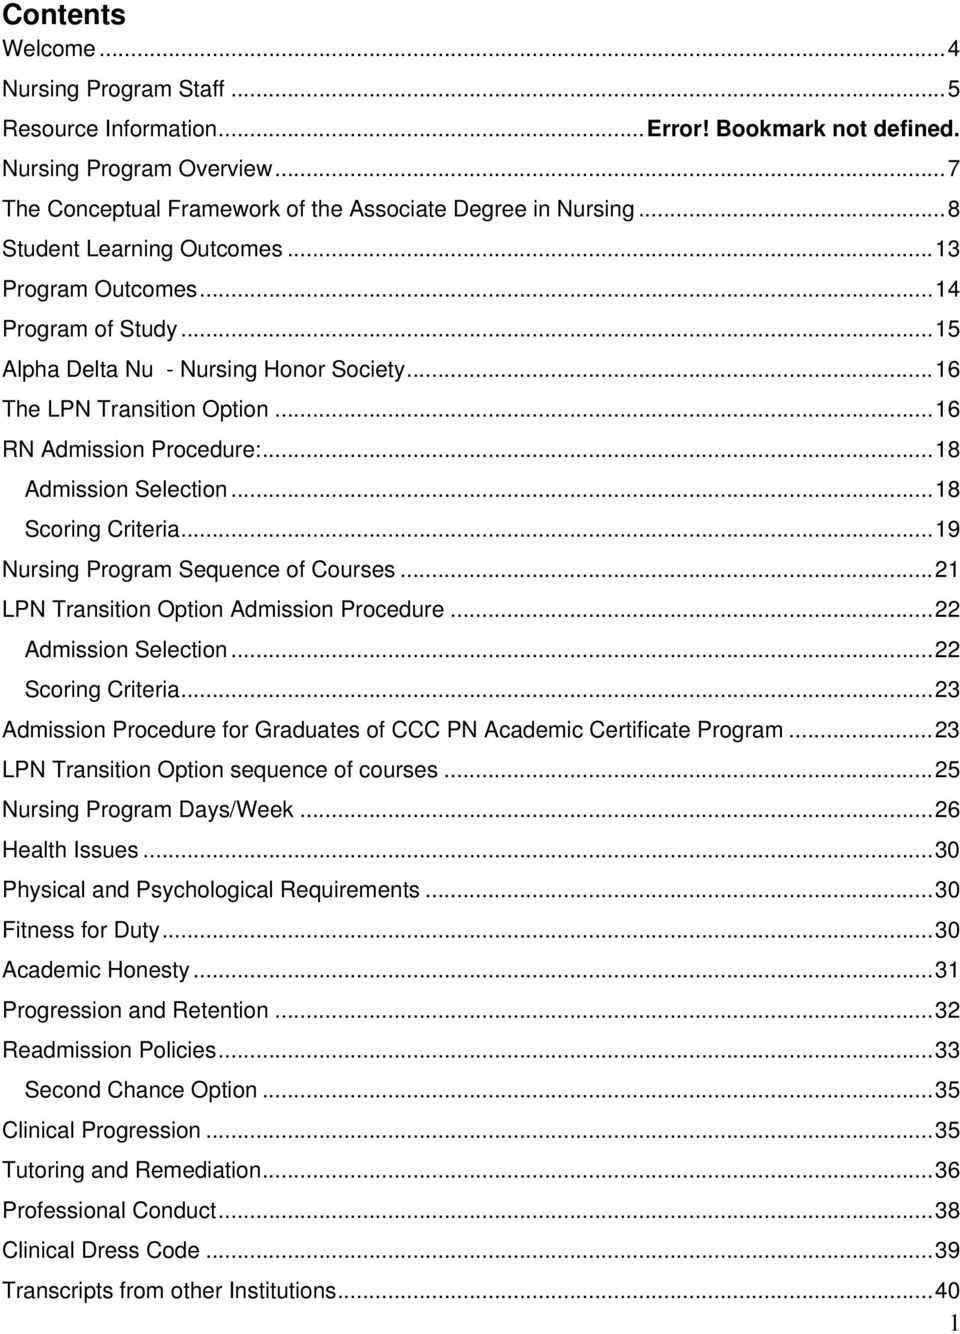 ..18 Admission Selection...18 Scoring Criteria...19 Nursing Program Sequence of Courses...21 LPN Transition Option Admission Procedure...22 Admission Selection...22 Scoring Criteria.